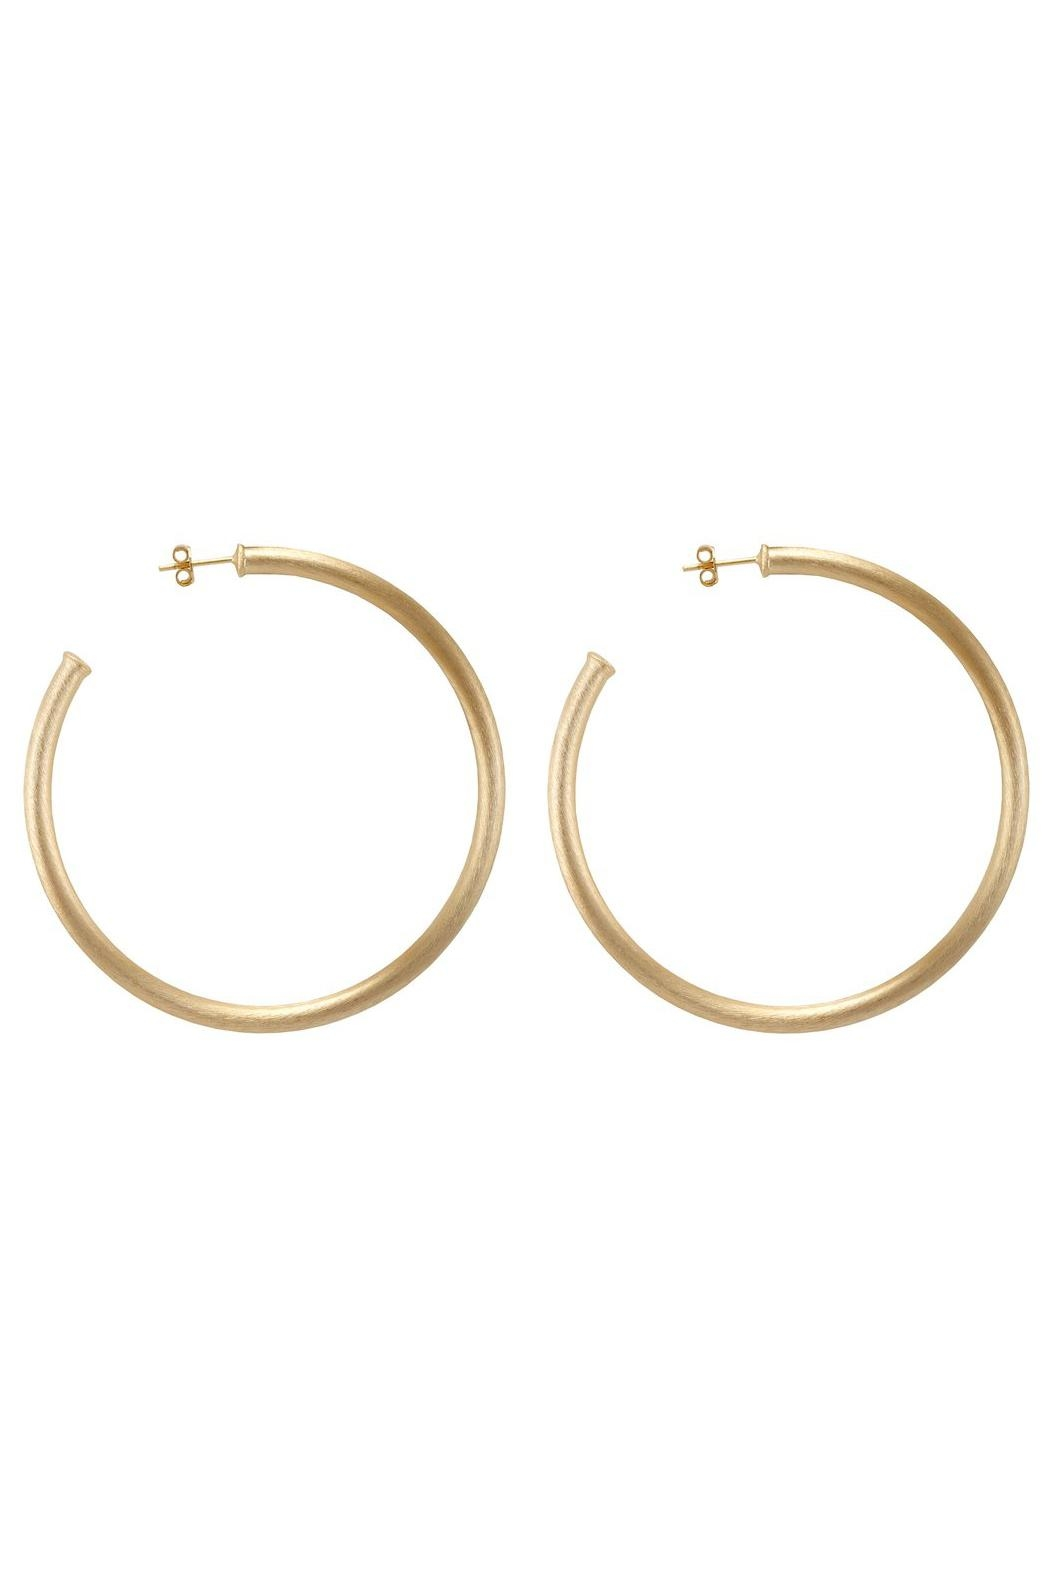 Sheila Fajl Brushed Gold Hoops - Front Cropped Image